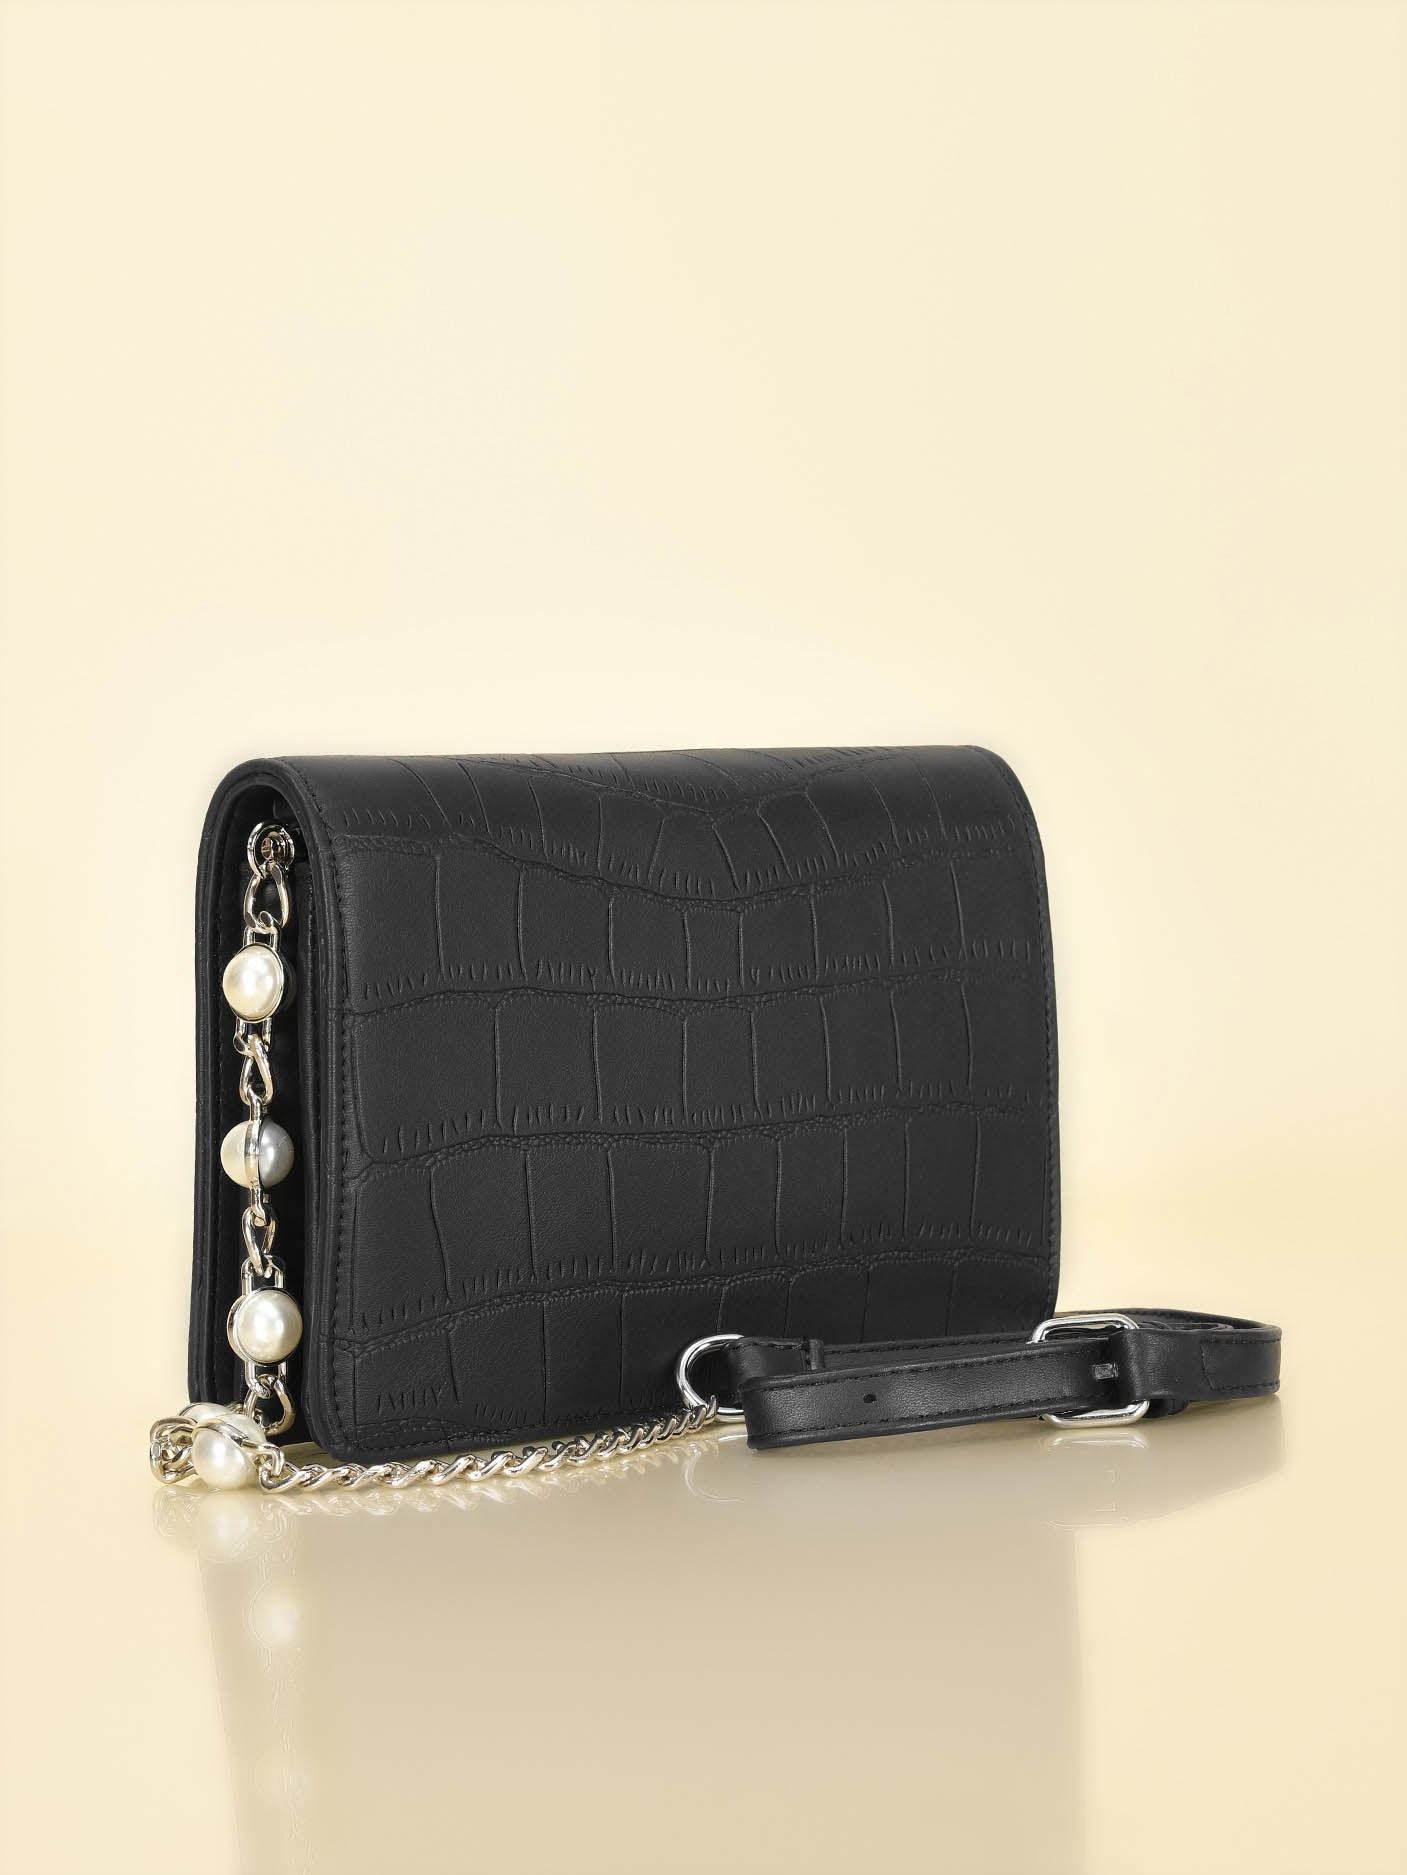 Pearl Strap Cross Bodybag